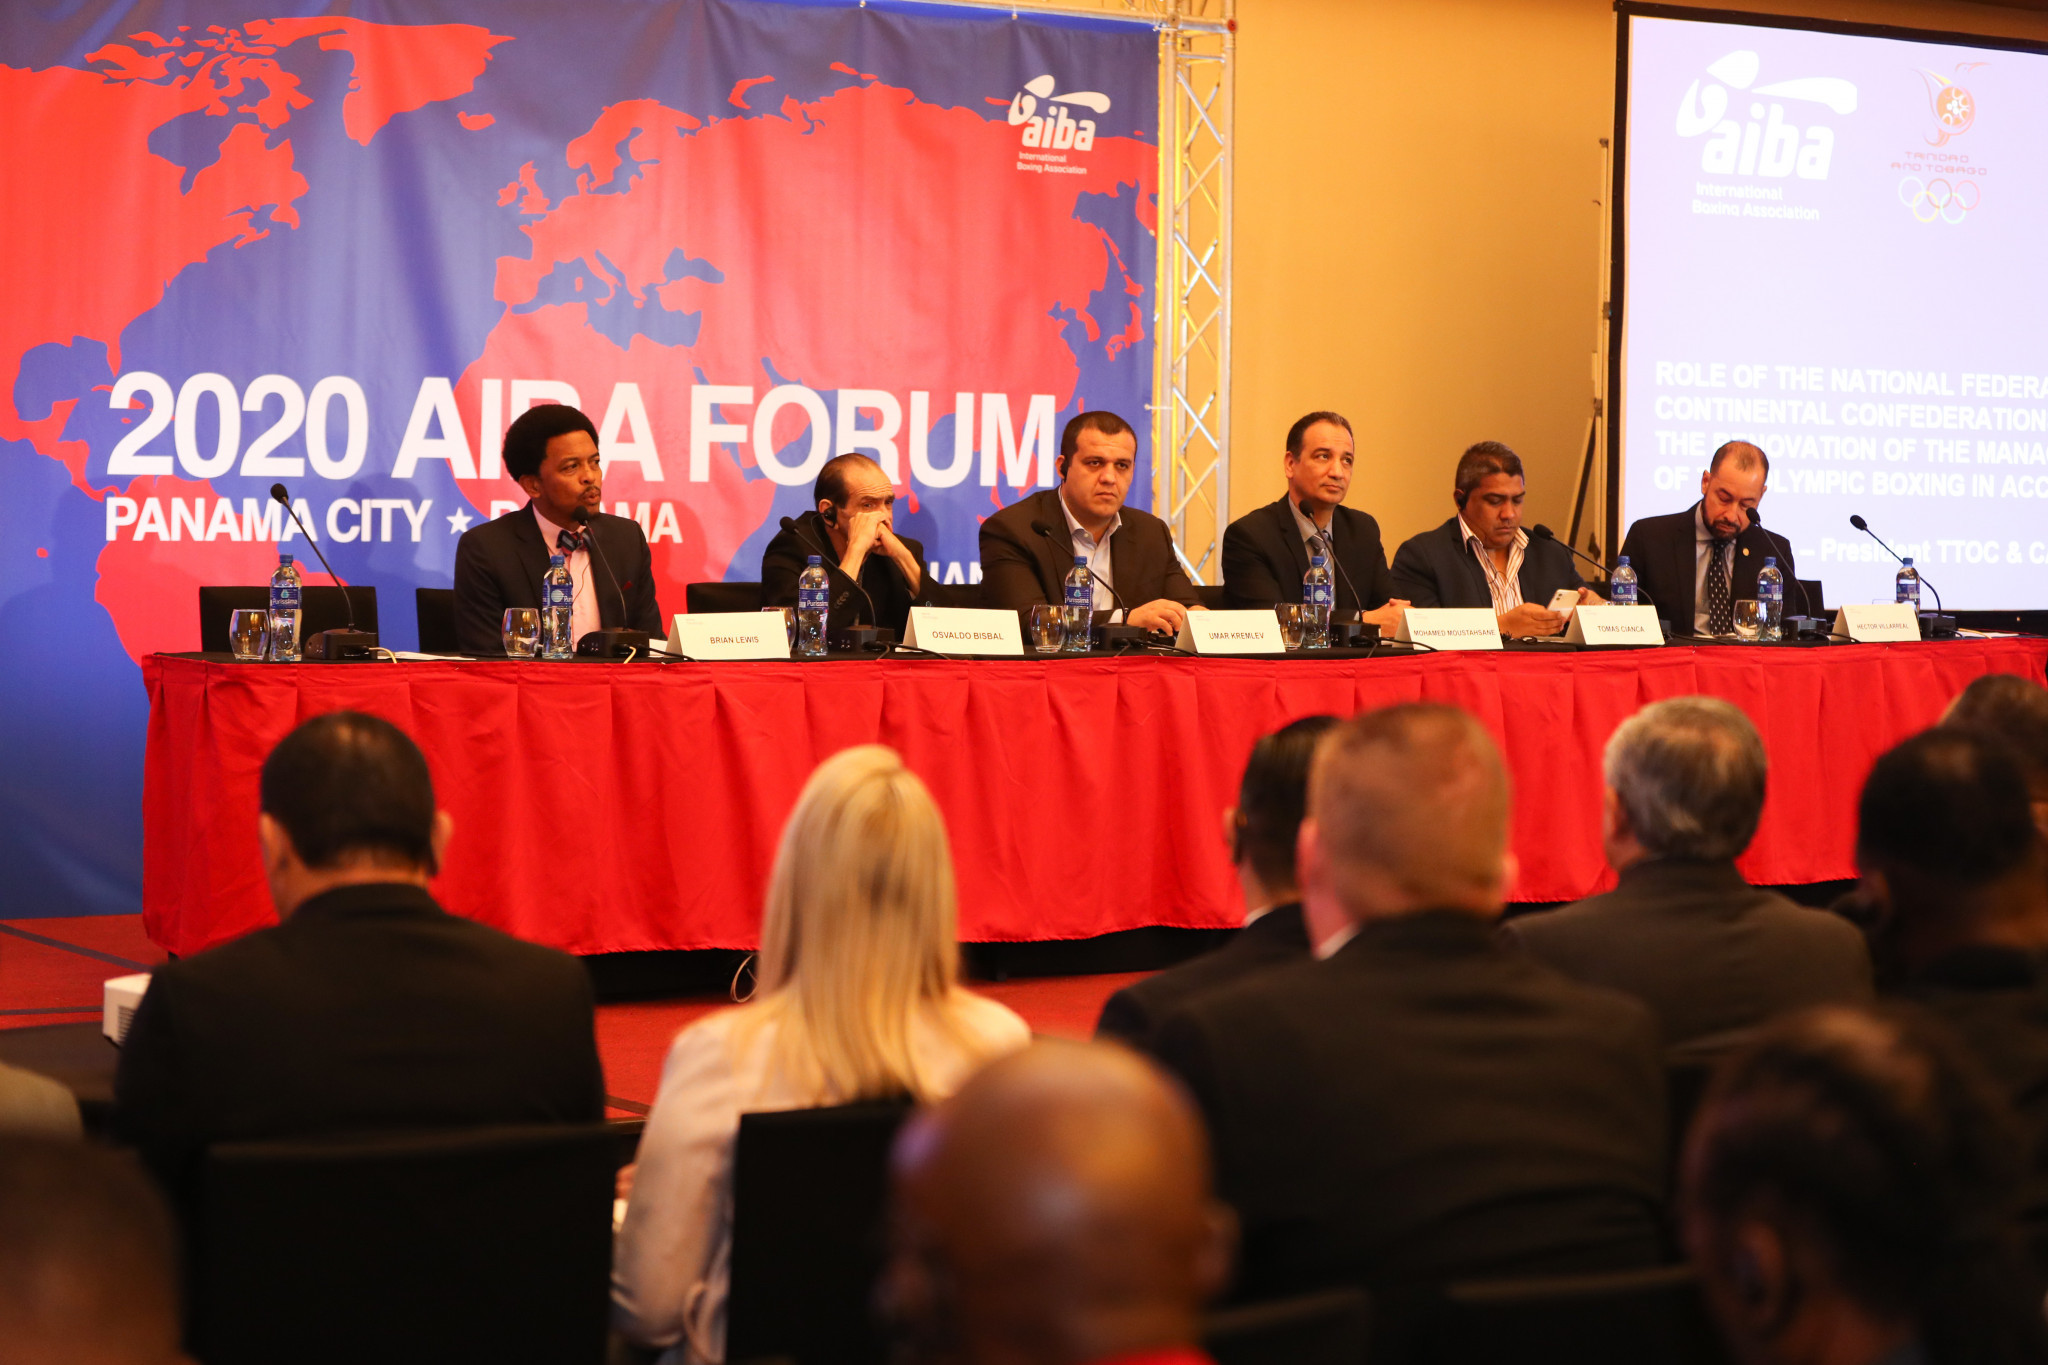 AIBA Interim President Mohamed Moustahsane claimed the inaugural Continental Forum in Panama was a